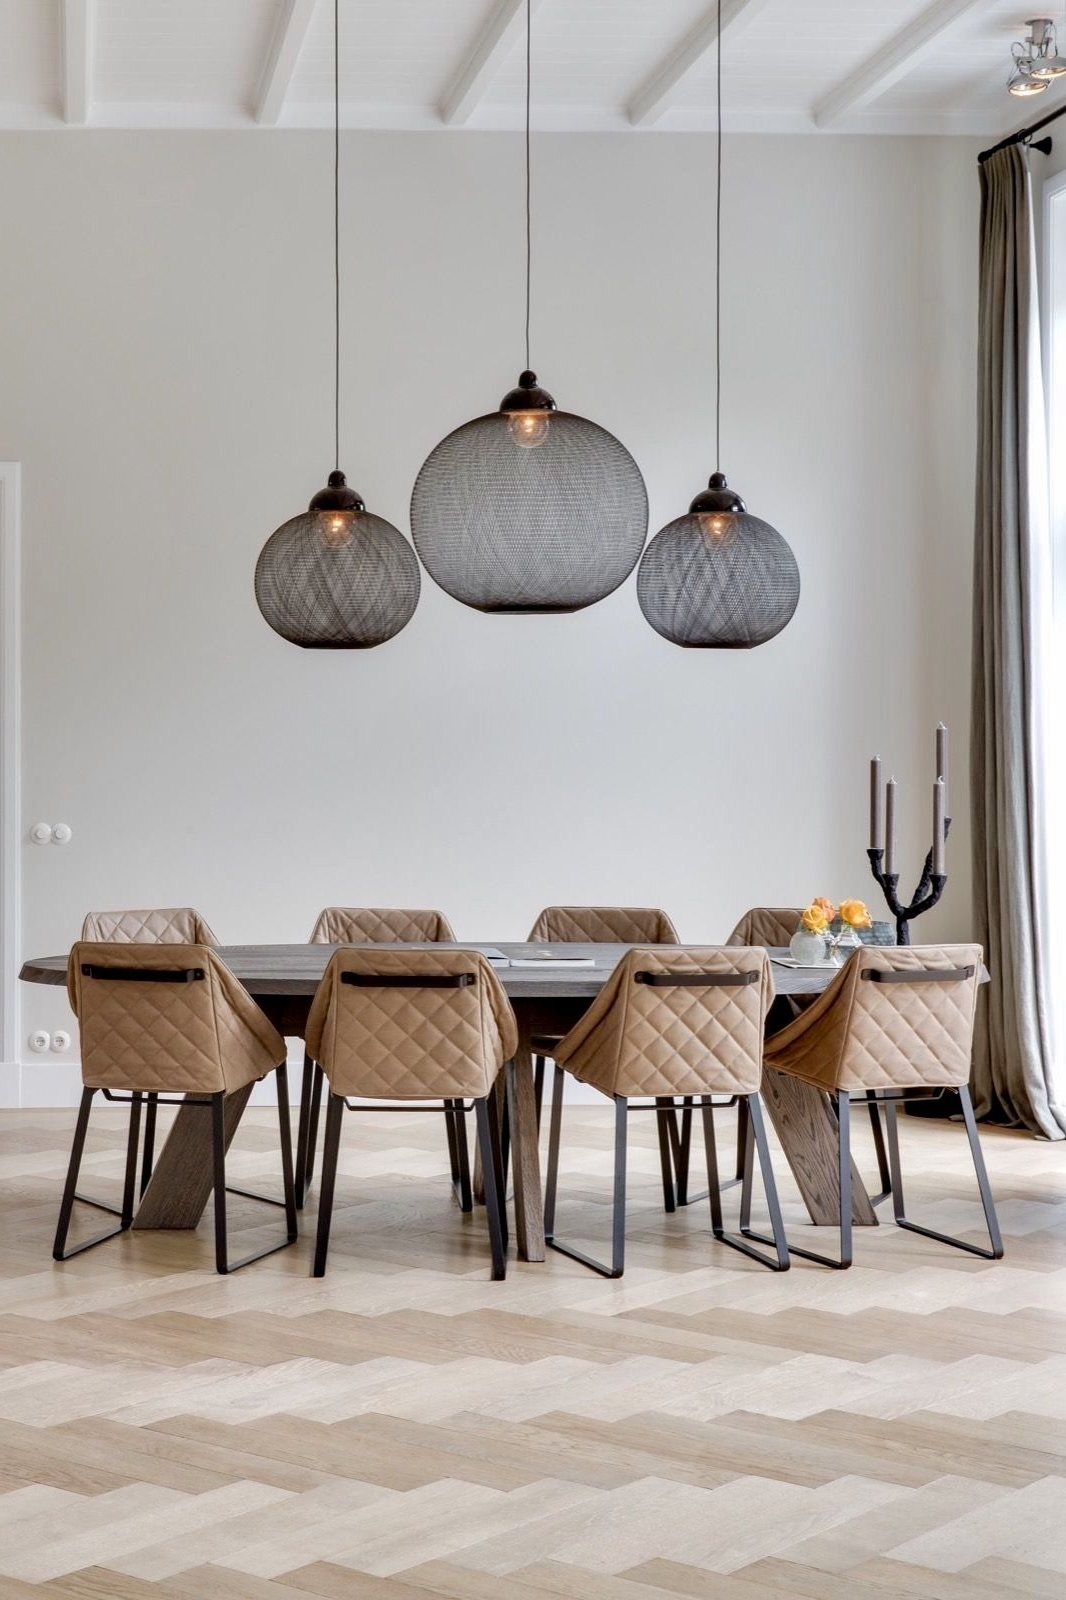 Best And Newest Dining Tables Lighting Inside Dining Room Pendant New Pendant Lighting For Dining Room Best Dining (View 6 of 25)